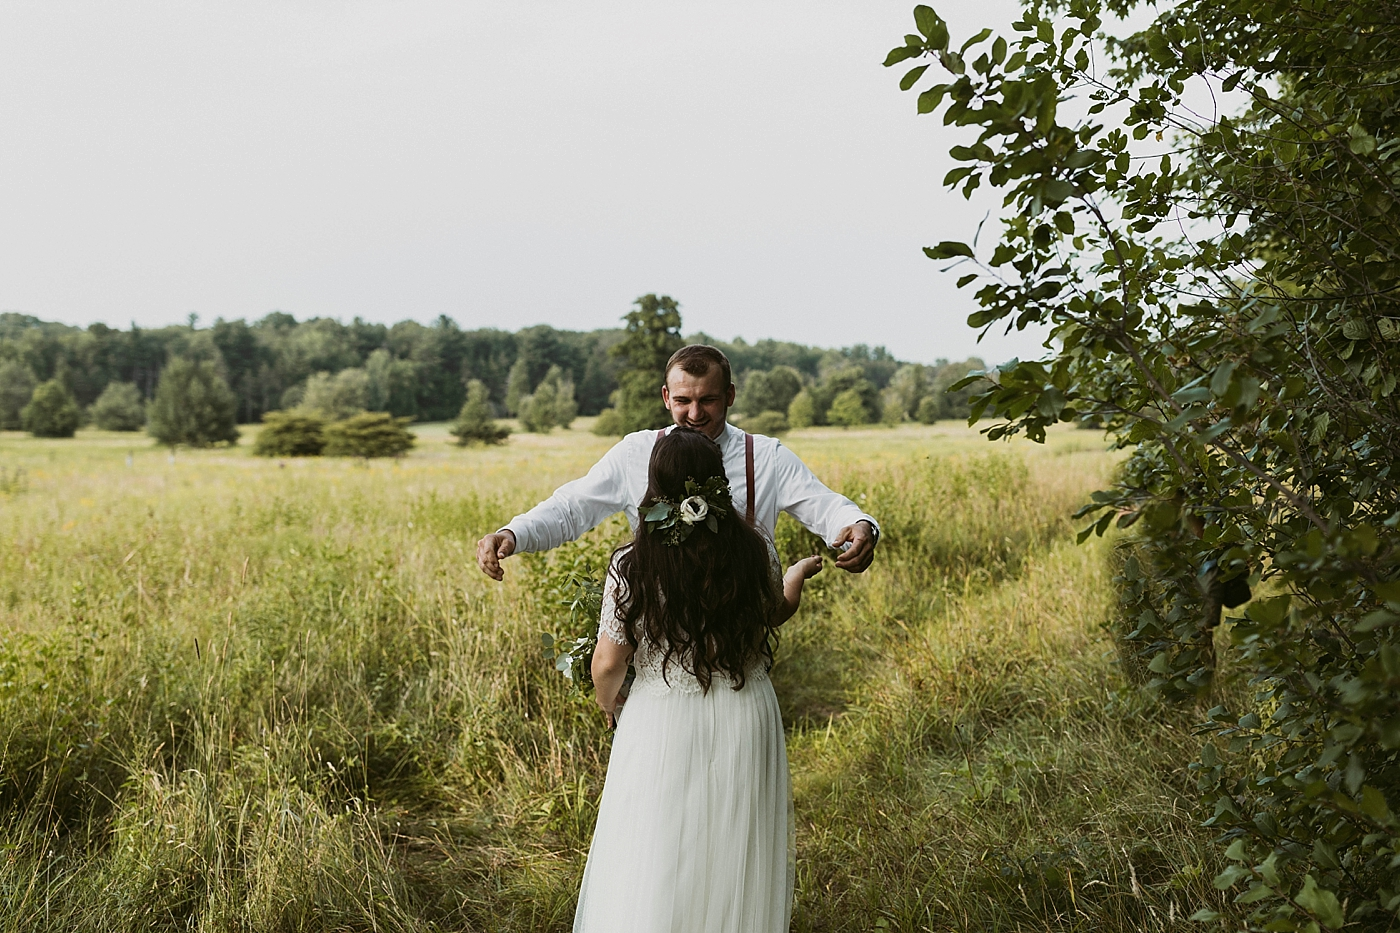 Meadow-Elopement-Ashley+Ben_MJPHOTO2018-61.jpg